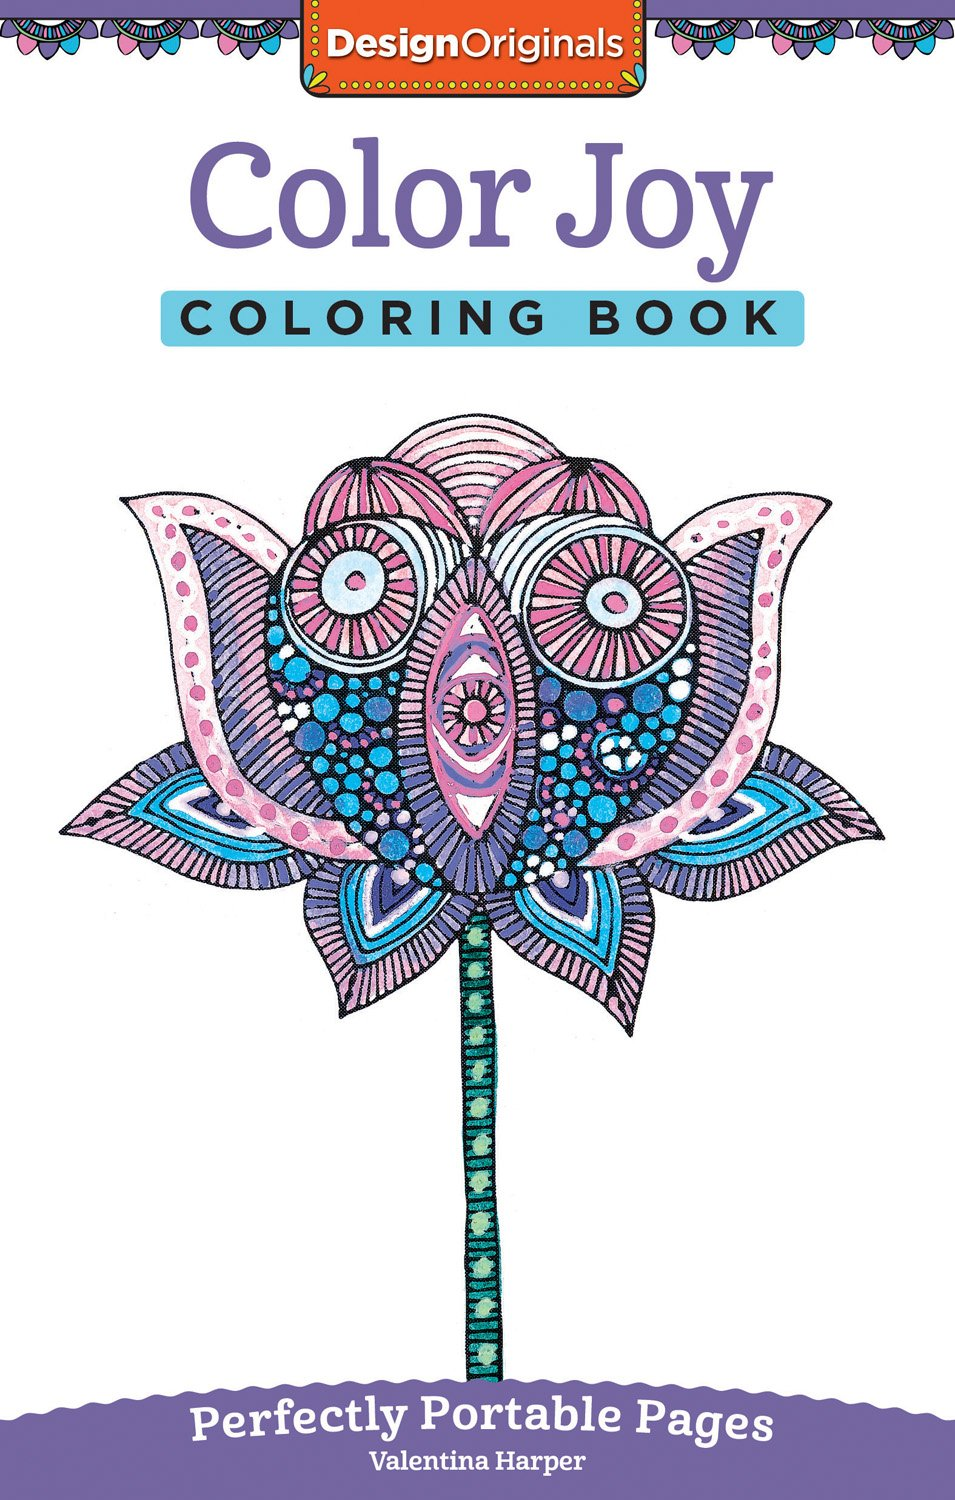 color joy coloring book perfectly portable pages on the go coloring book design originals extra thick high quality perforated paper convenient 5x8 size is perfect to take along wherever you go